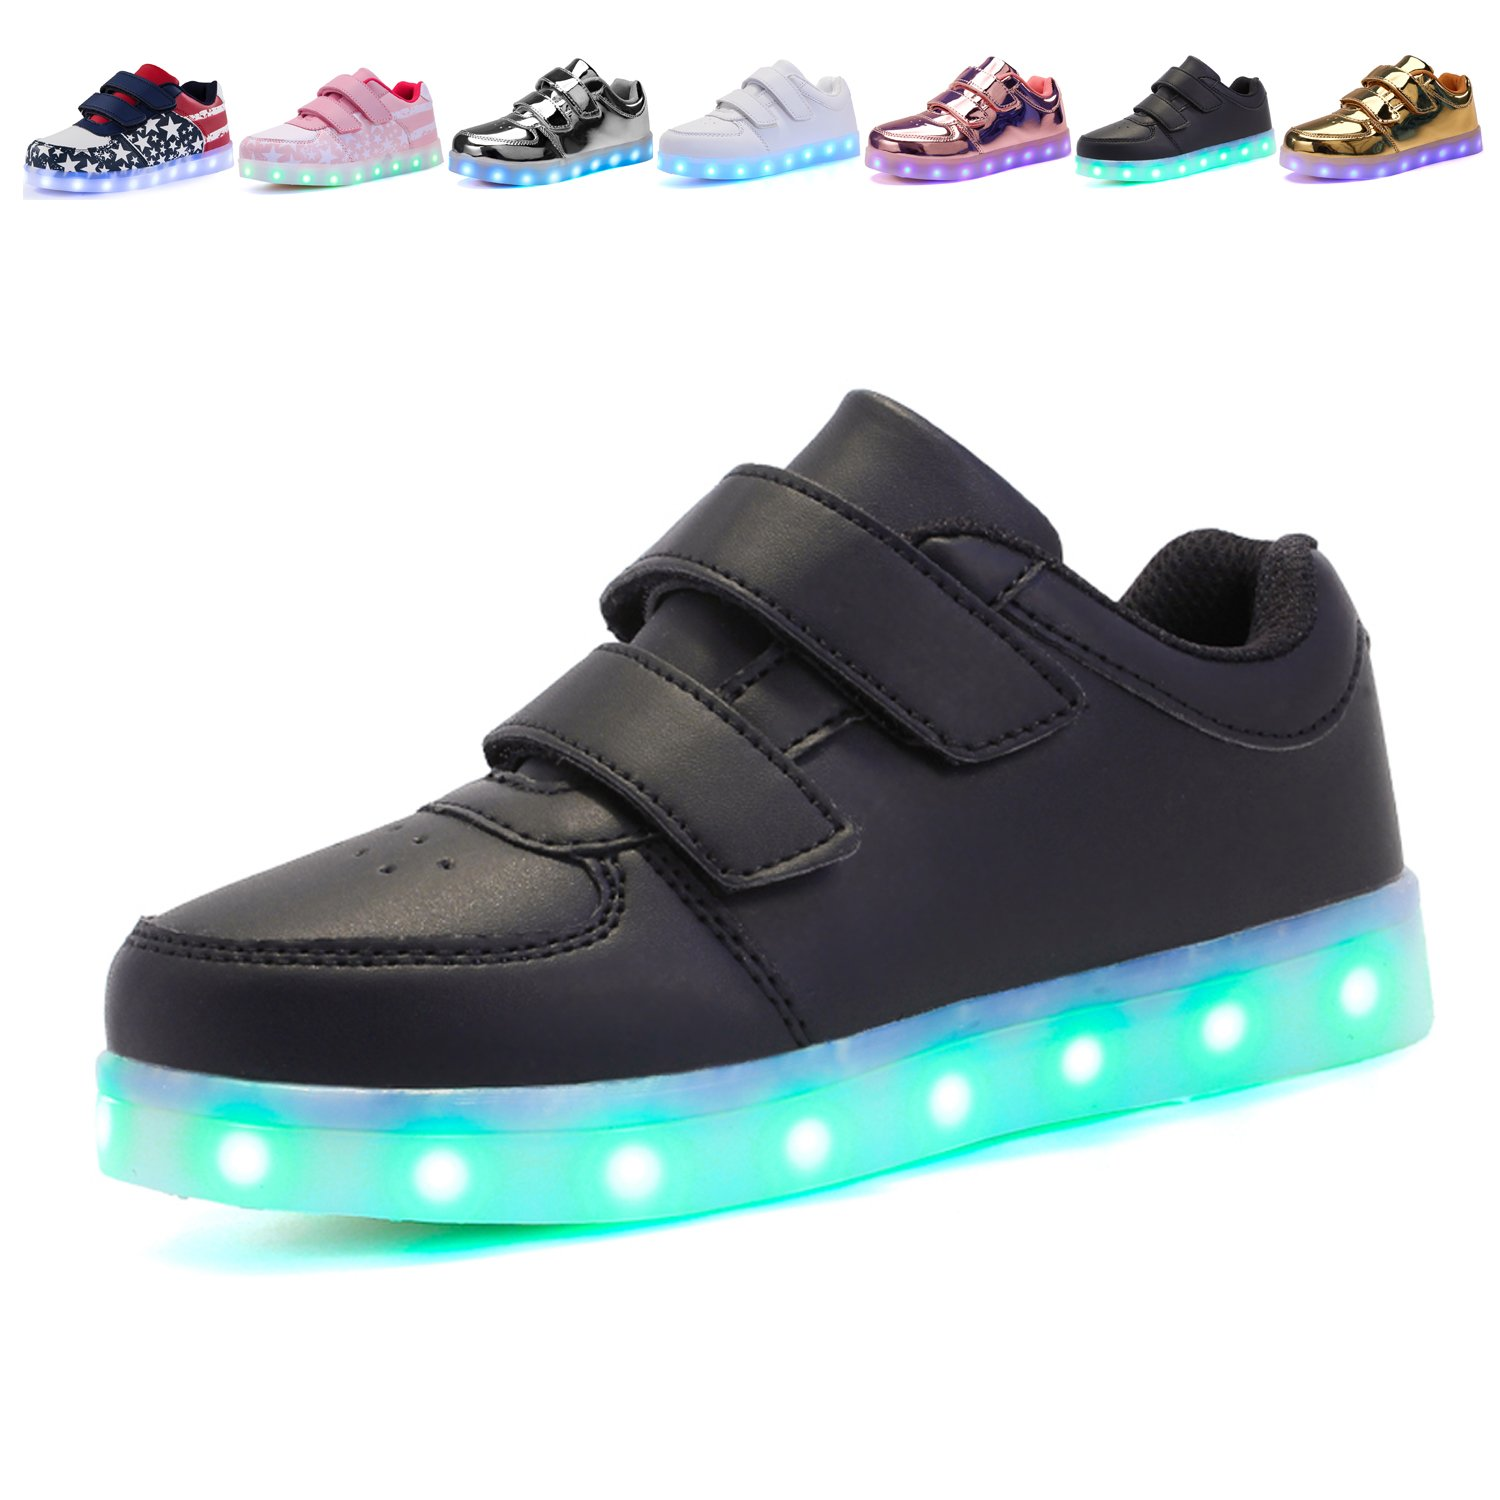 Voovix Kids LED Light up Shoes Lighting Low-Top Sneakers for Boys and Girls(Black,US2.5/EU34)